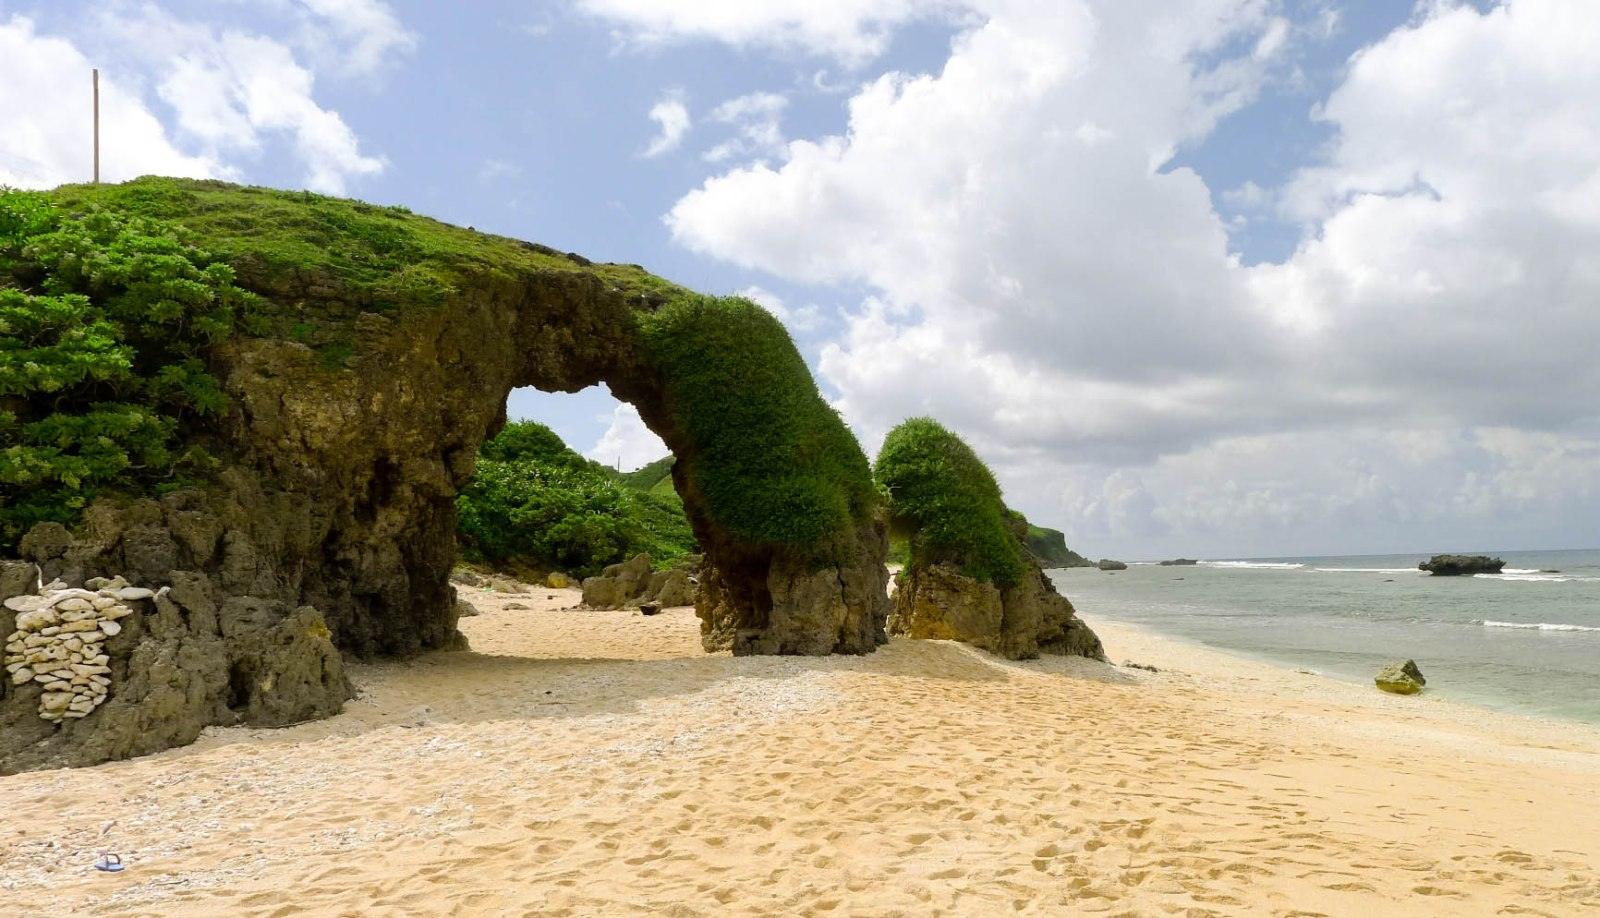 Relax while traveling at Morong Beach, Sabtang Island, Batanes